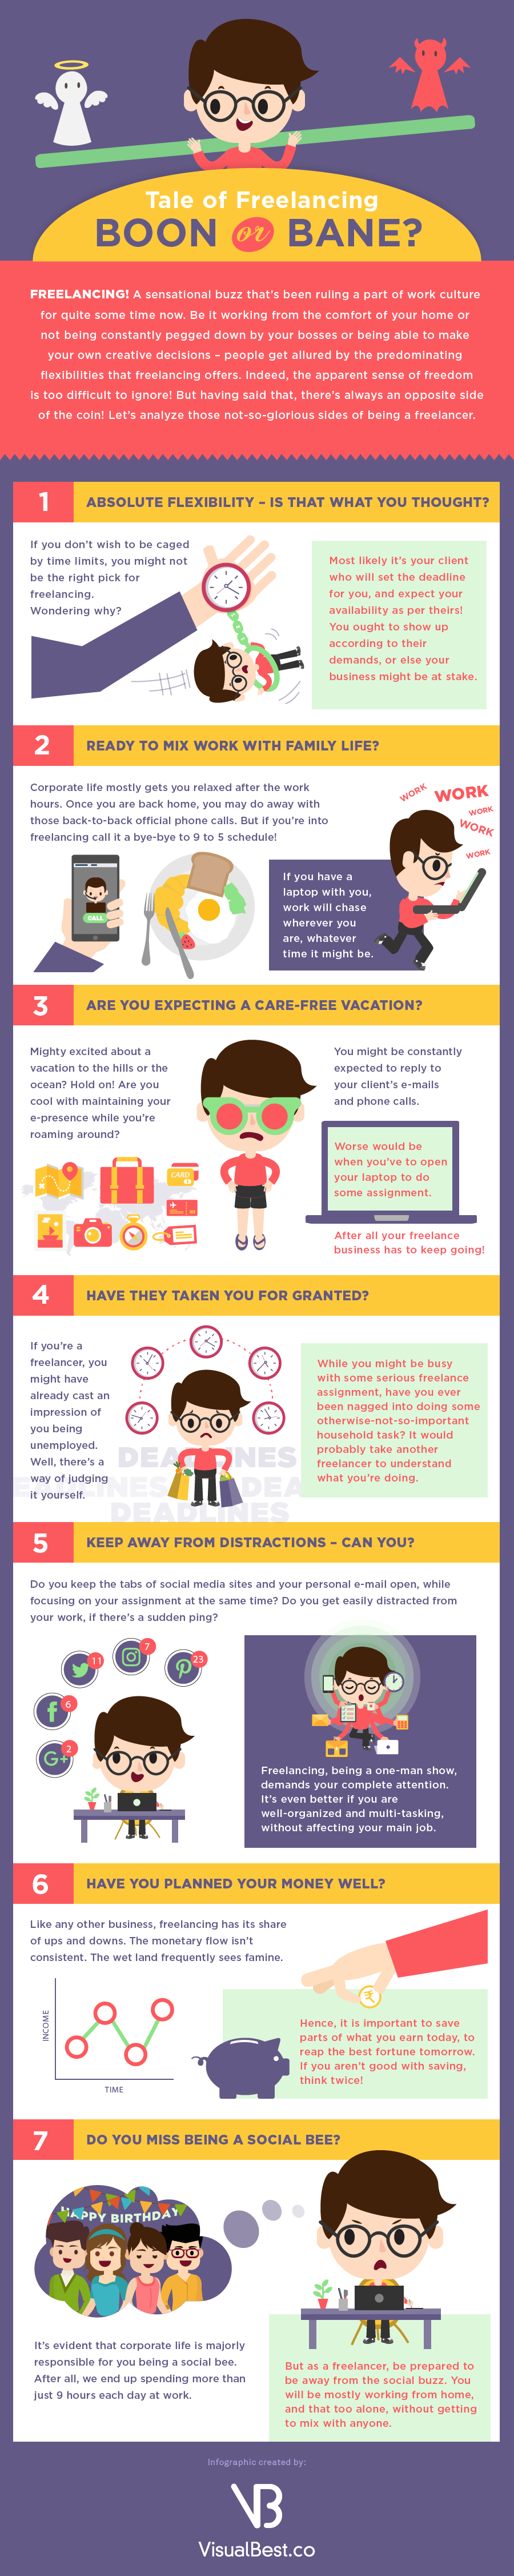 Disadvantages Of Freelancing - Infographic